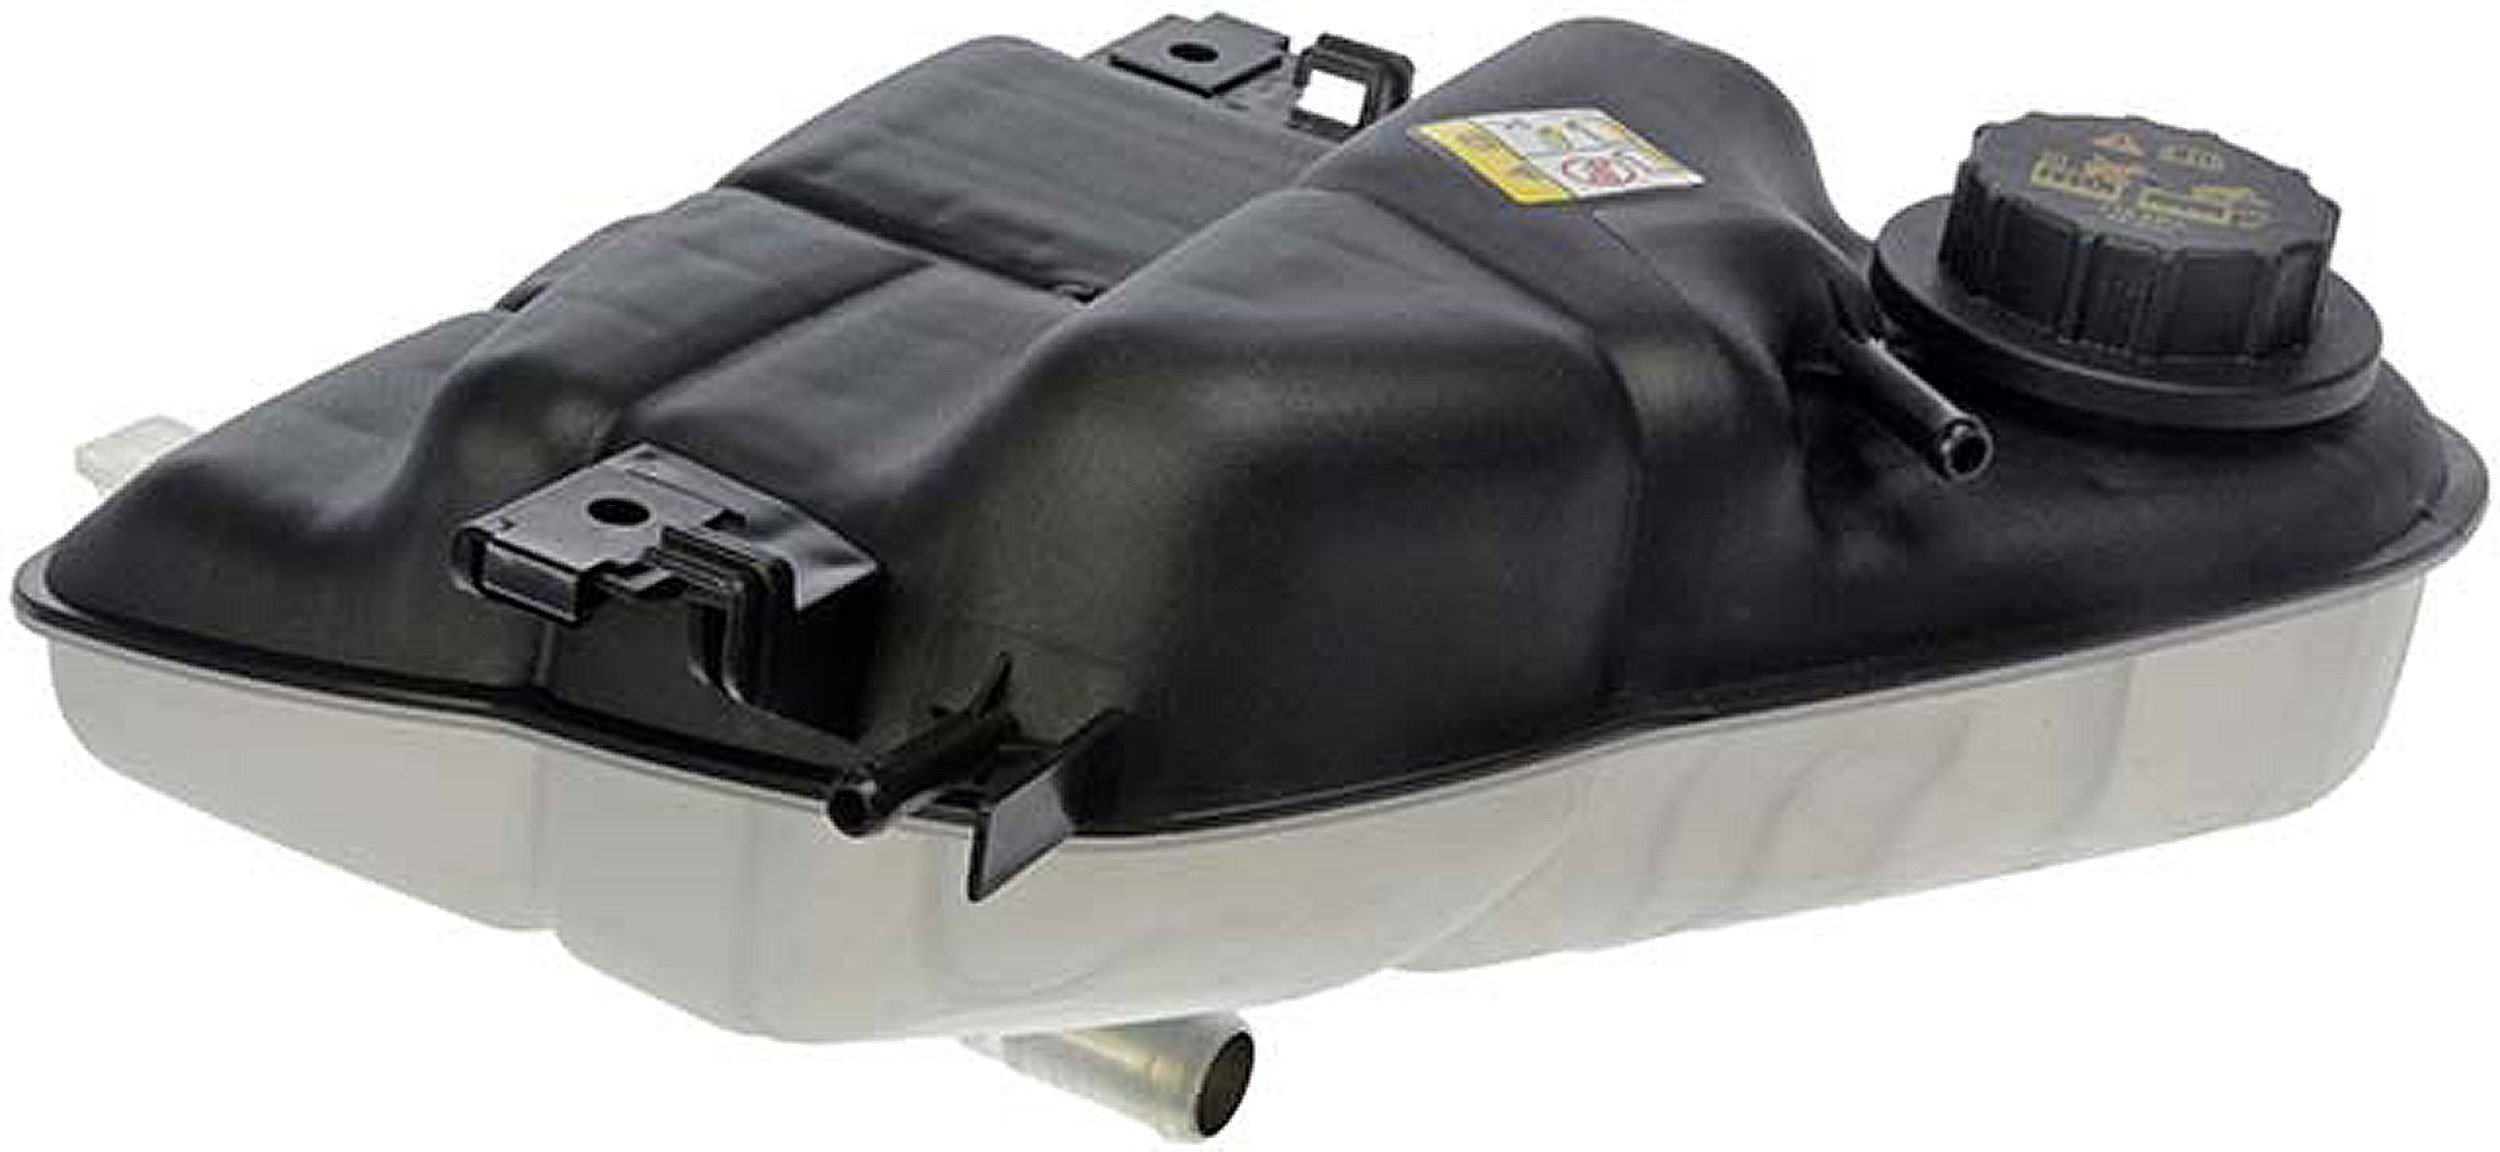 APDTY 714328 Radiator Coolant Recovery Degas Reservoir Overflow Expansion Plastic Tank Bottle w/Cap Fits 2003-2007 Ford Truck w/ 6.0L Diesel Engine (Replaces 6C3Z8A080B, 3C3Z8A080AE)